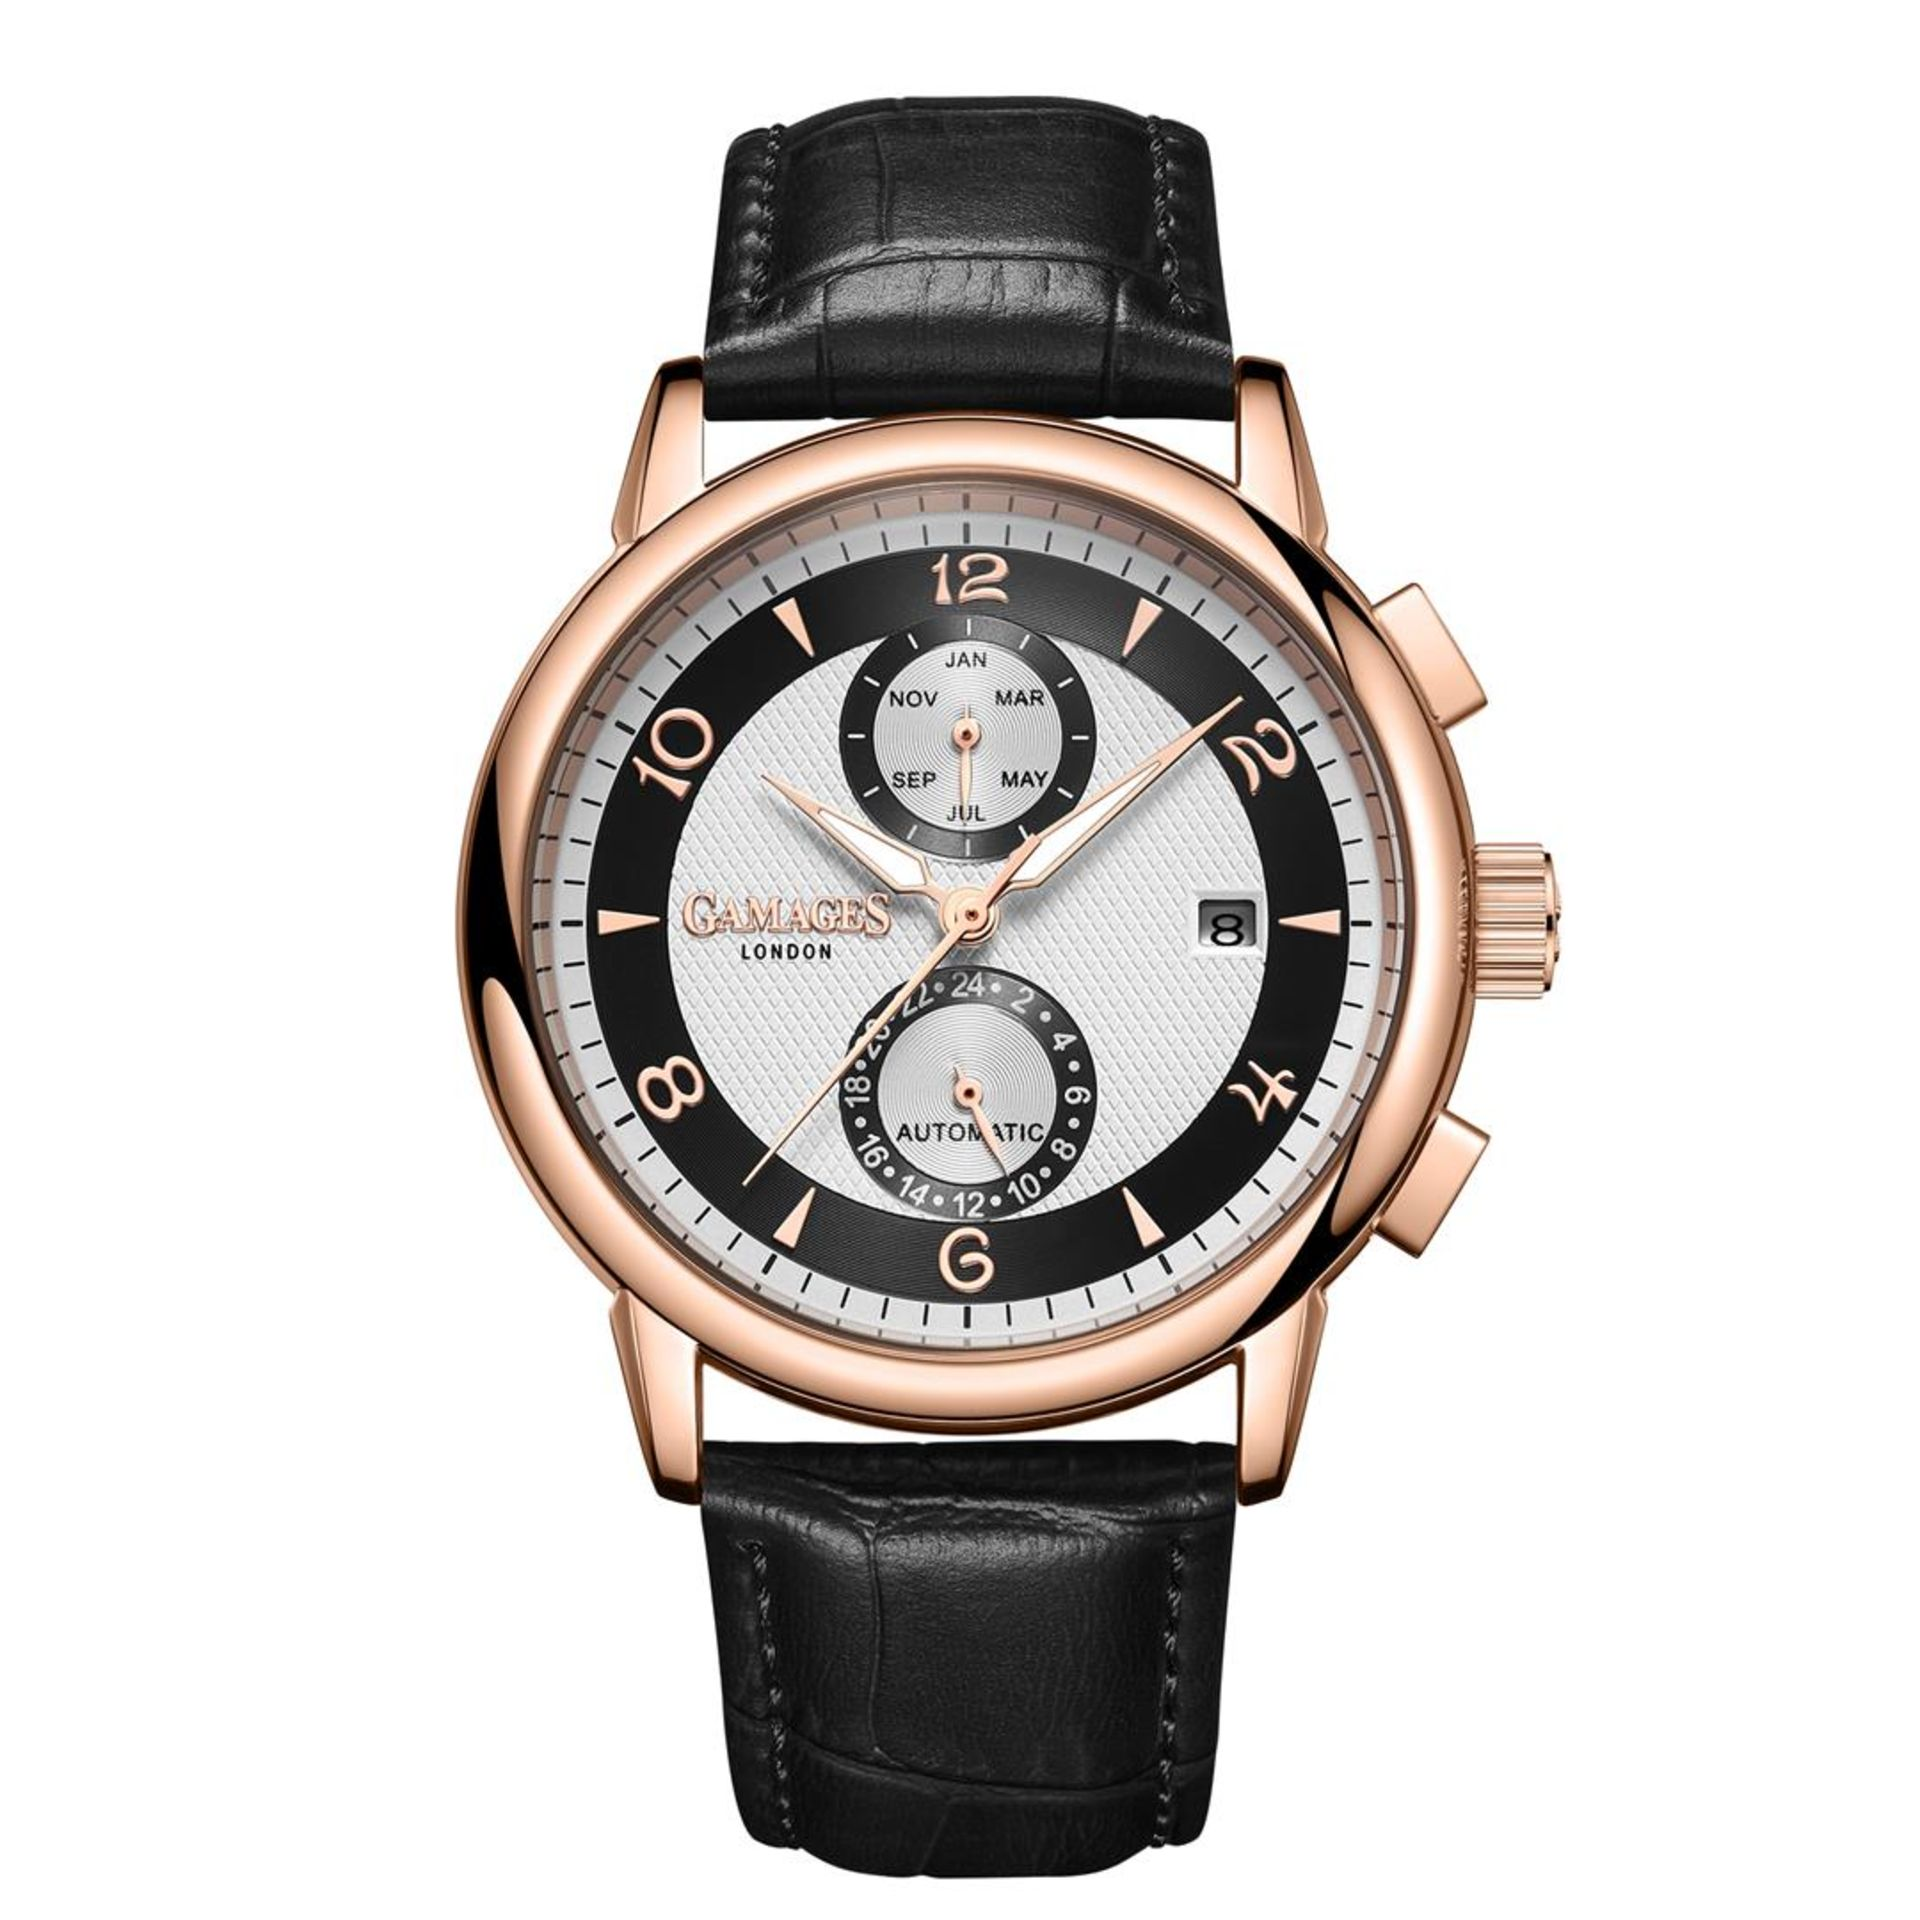 GAMAGES OF LONDON Limited Edition Hand Assembled Mystique Automatic Silver - Image 3 of 5